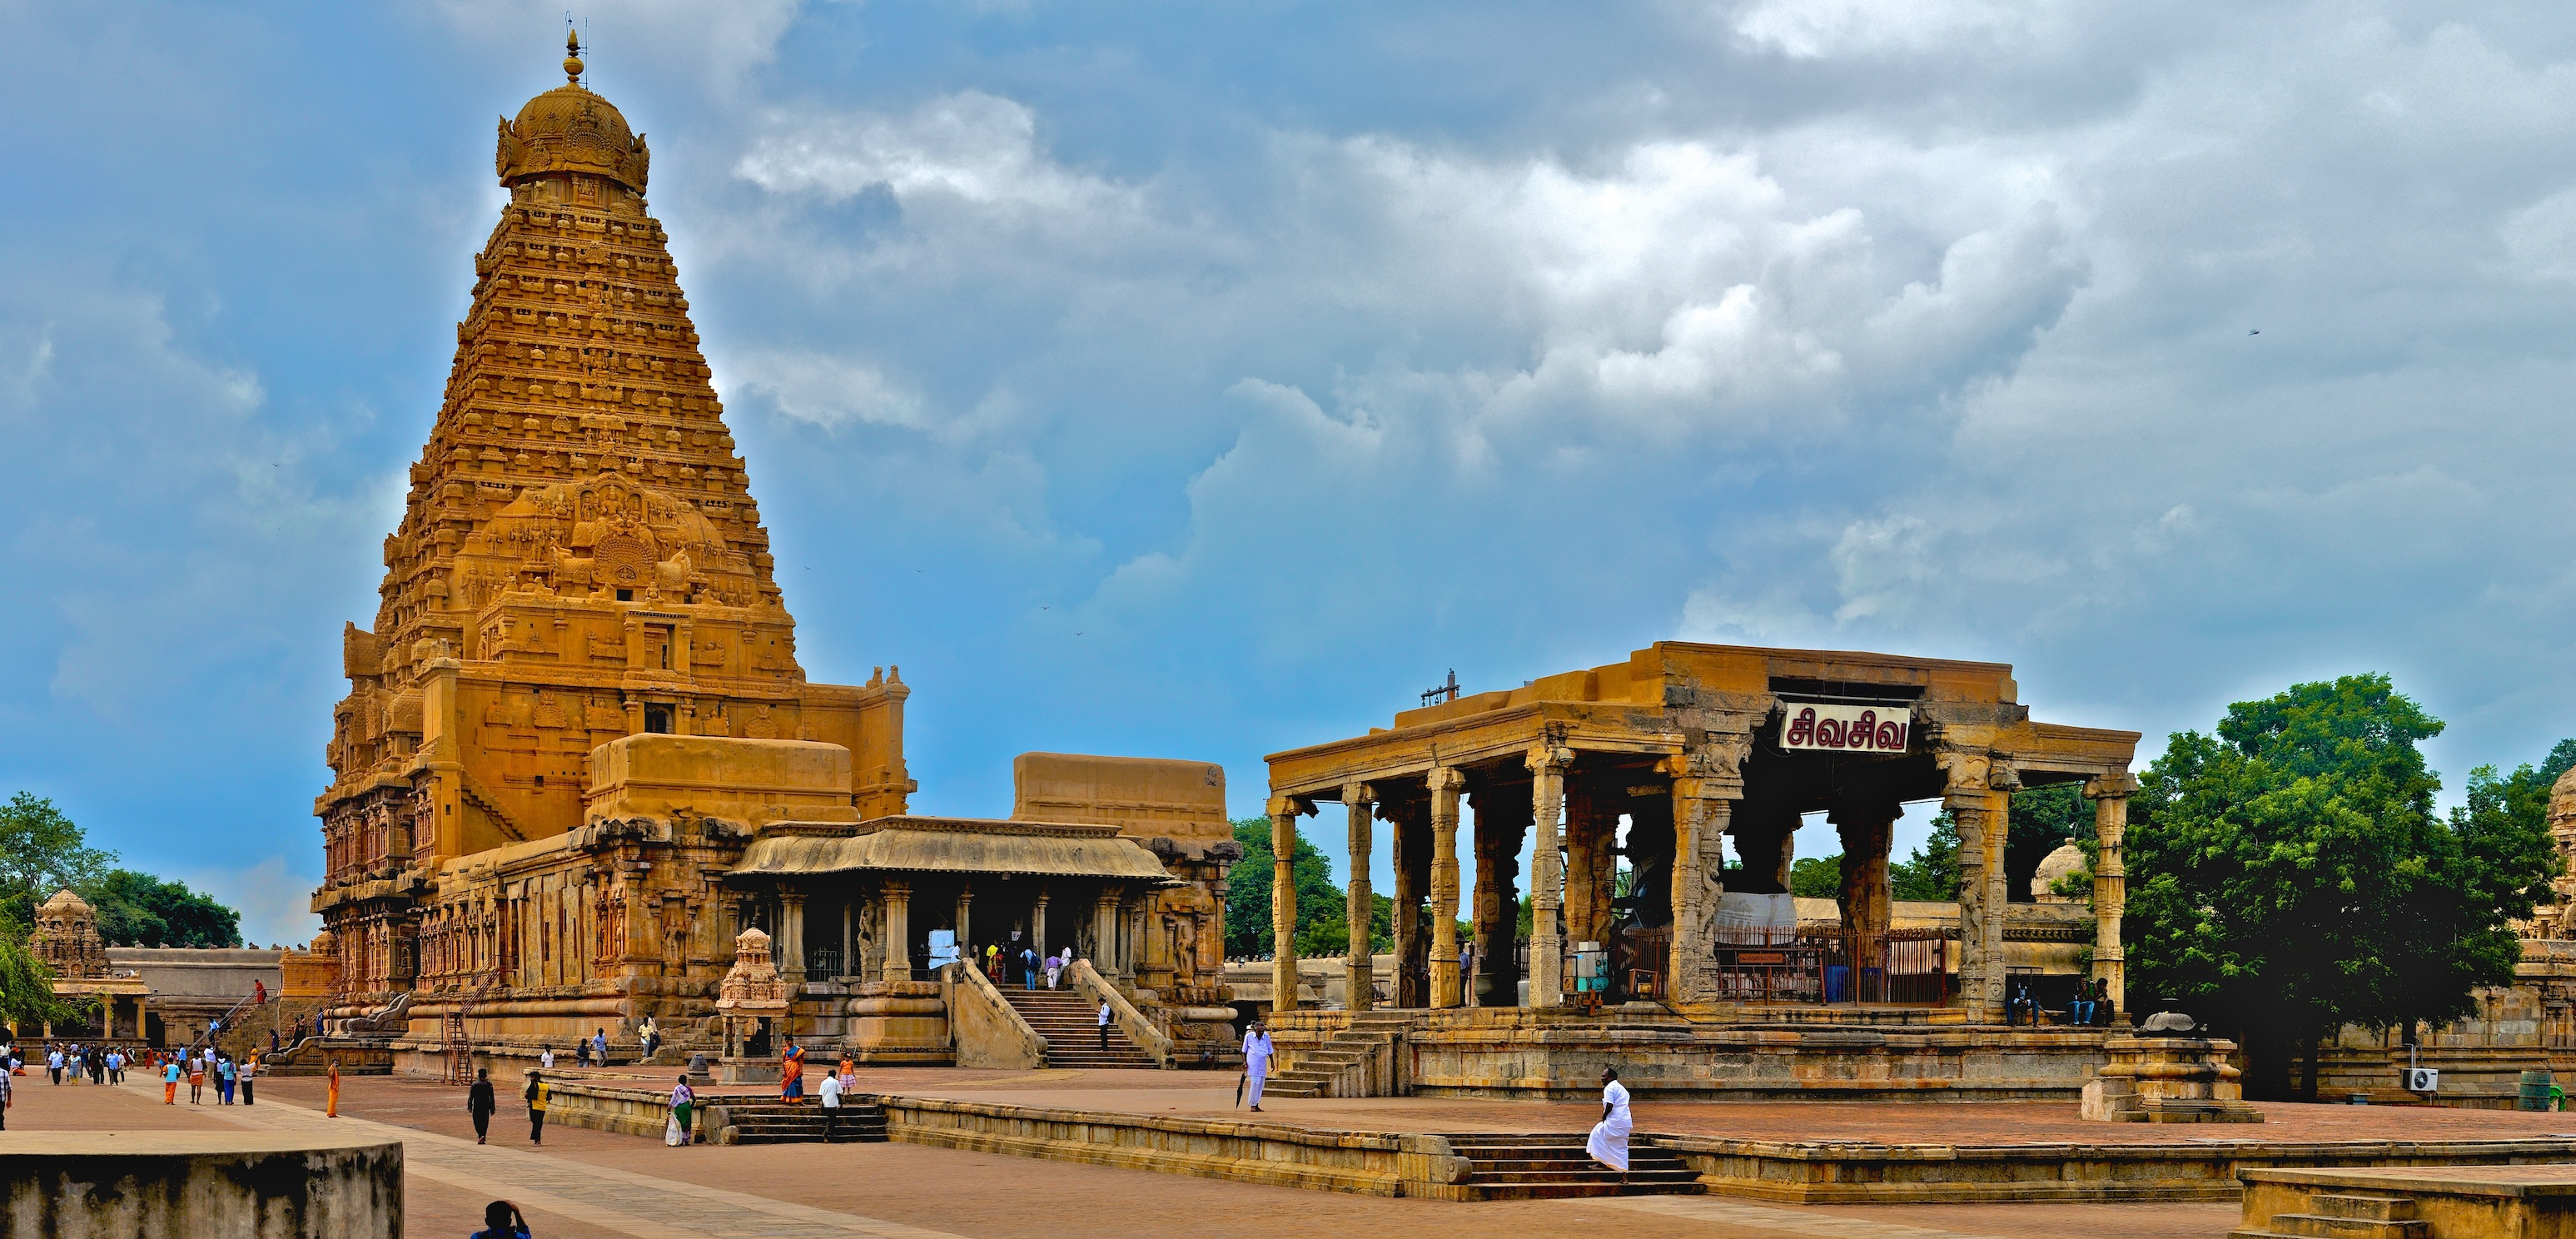 5. チョーラ時代に建てられ、今は世界遺産になっている、「ブリハデーシュワラ寺院」 Brihadeeswarar Temple By Sivaraj Mathi (Own work) [CC BY-SA 3.0 (http://creativecommons.org/licenses/by-sa/3.0)], via Wikimedia Commons https://commons.wikimedia.org/wiki/File%3ABrihadeeswarar_Temple_Full_View.jpg